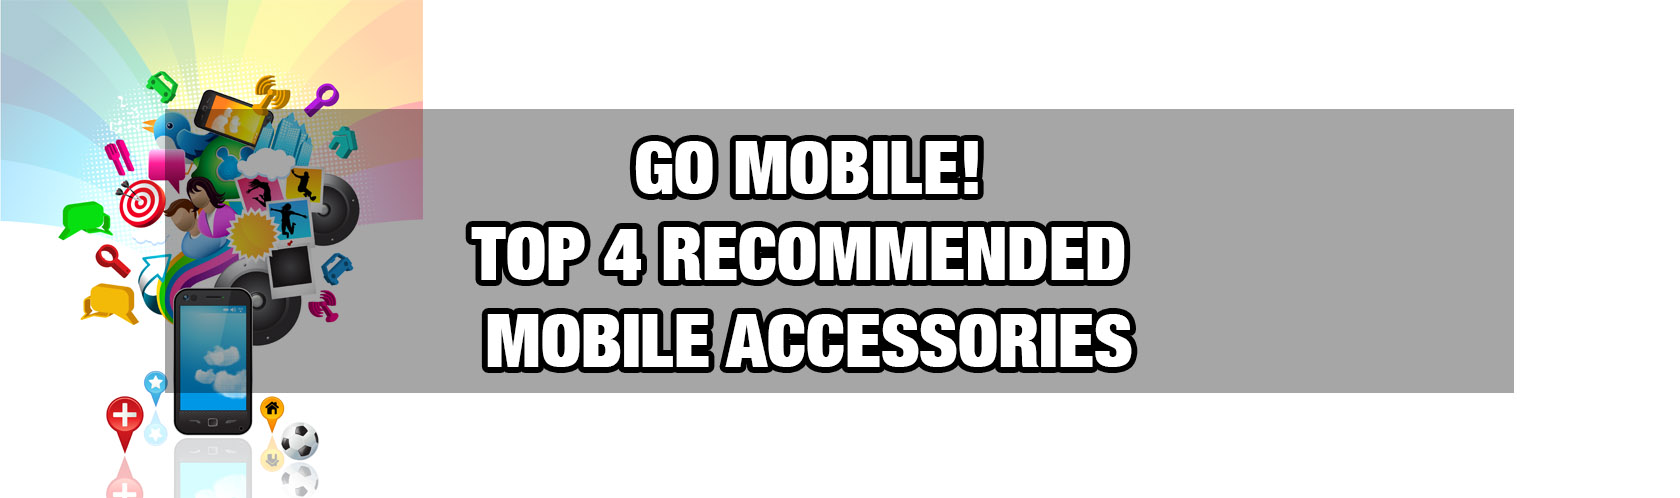 Go Mobile! Top 4 Recommended Mobile Accessories